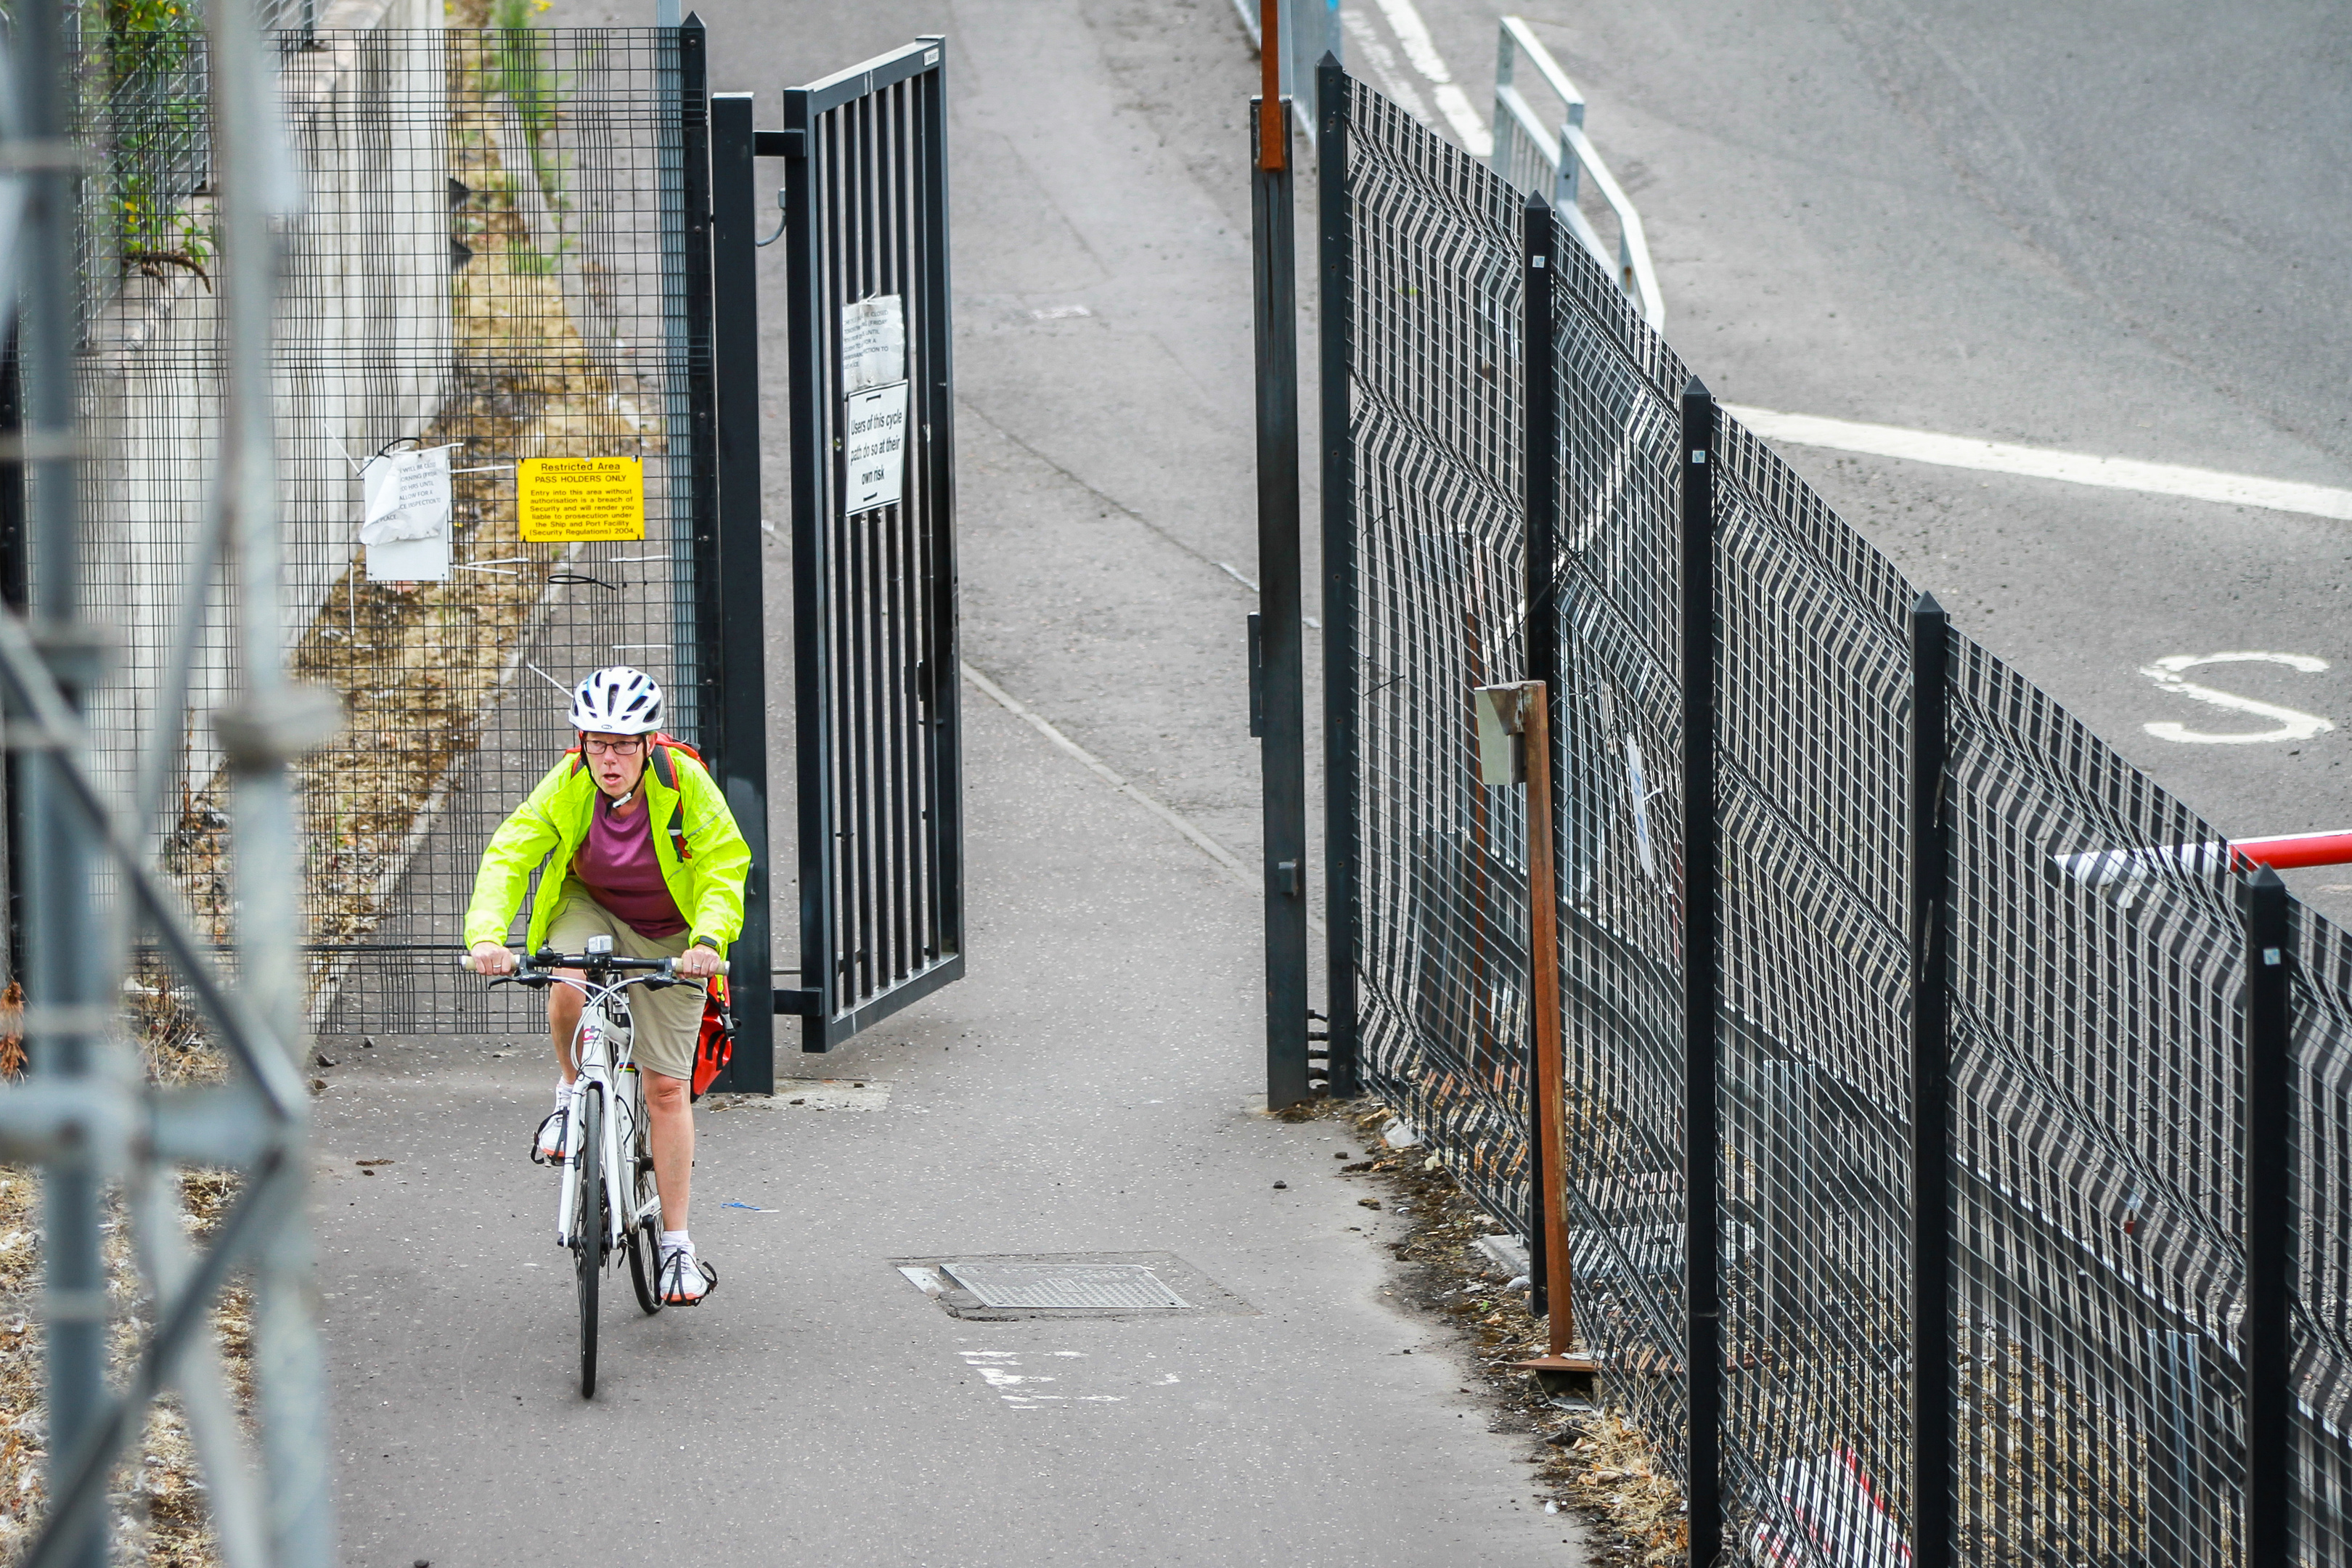 A cyclist entering the Dundee Docks section of the cycle path.